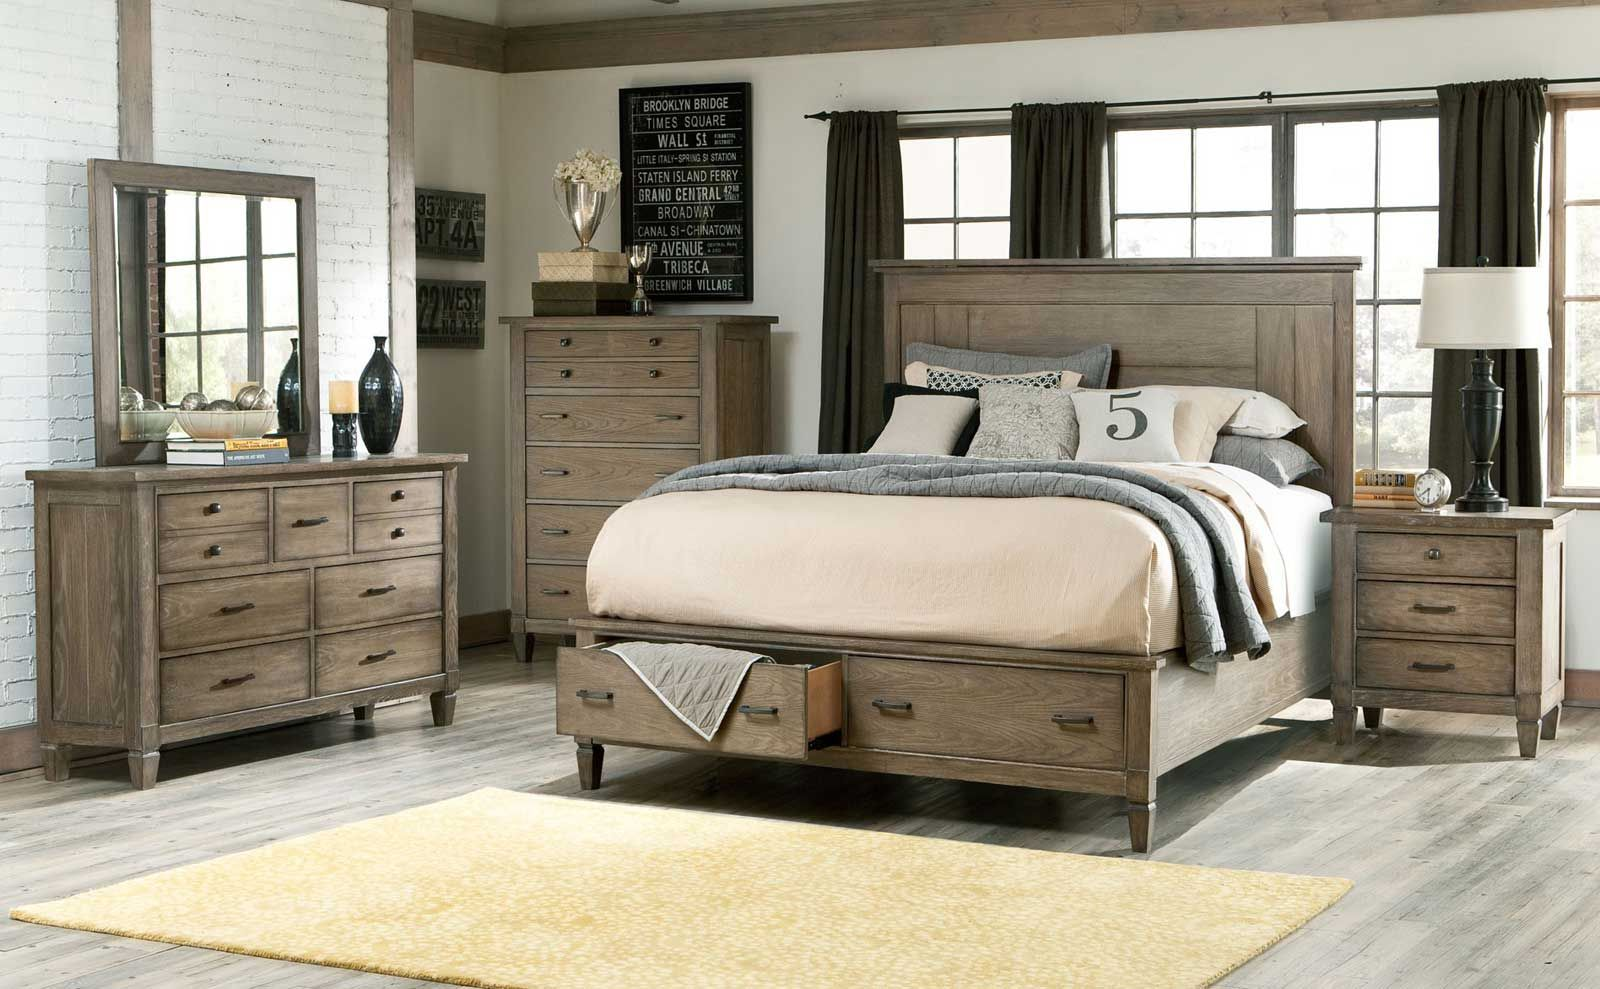 King Size Bedroom Sets Bedroom Sets And Furniture On Pinterest